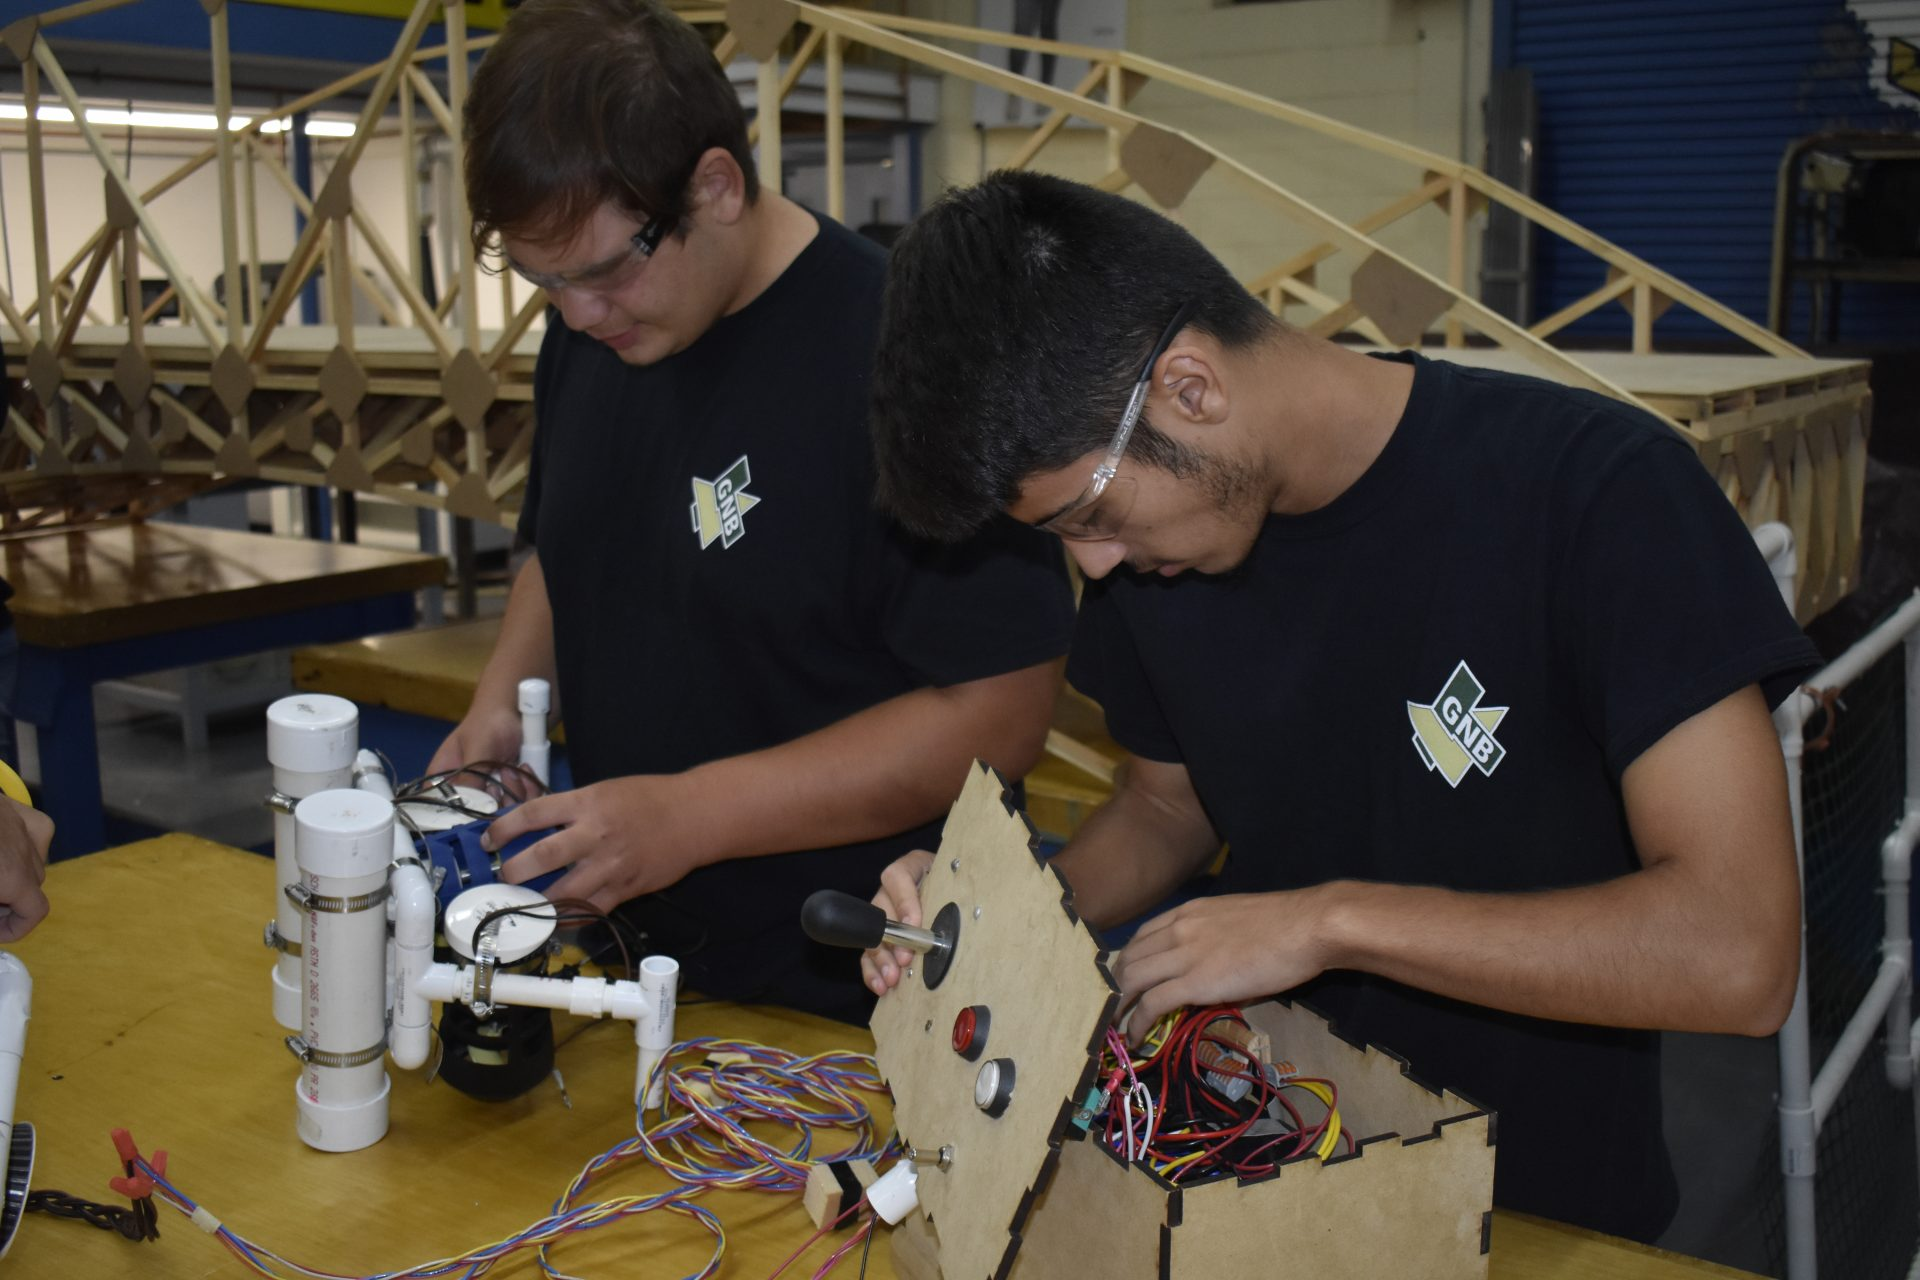 2 students working robot